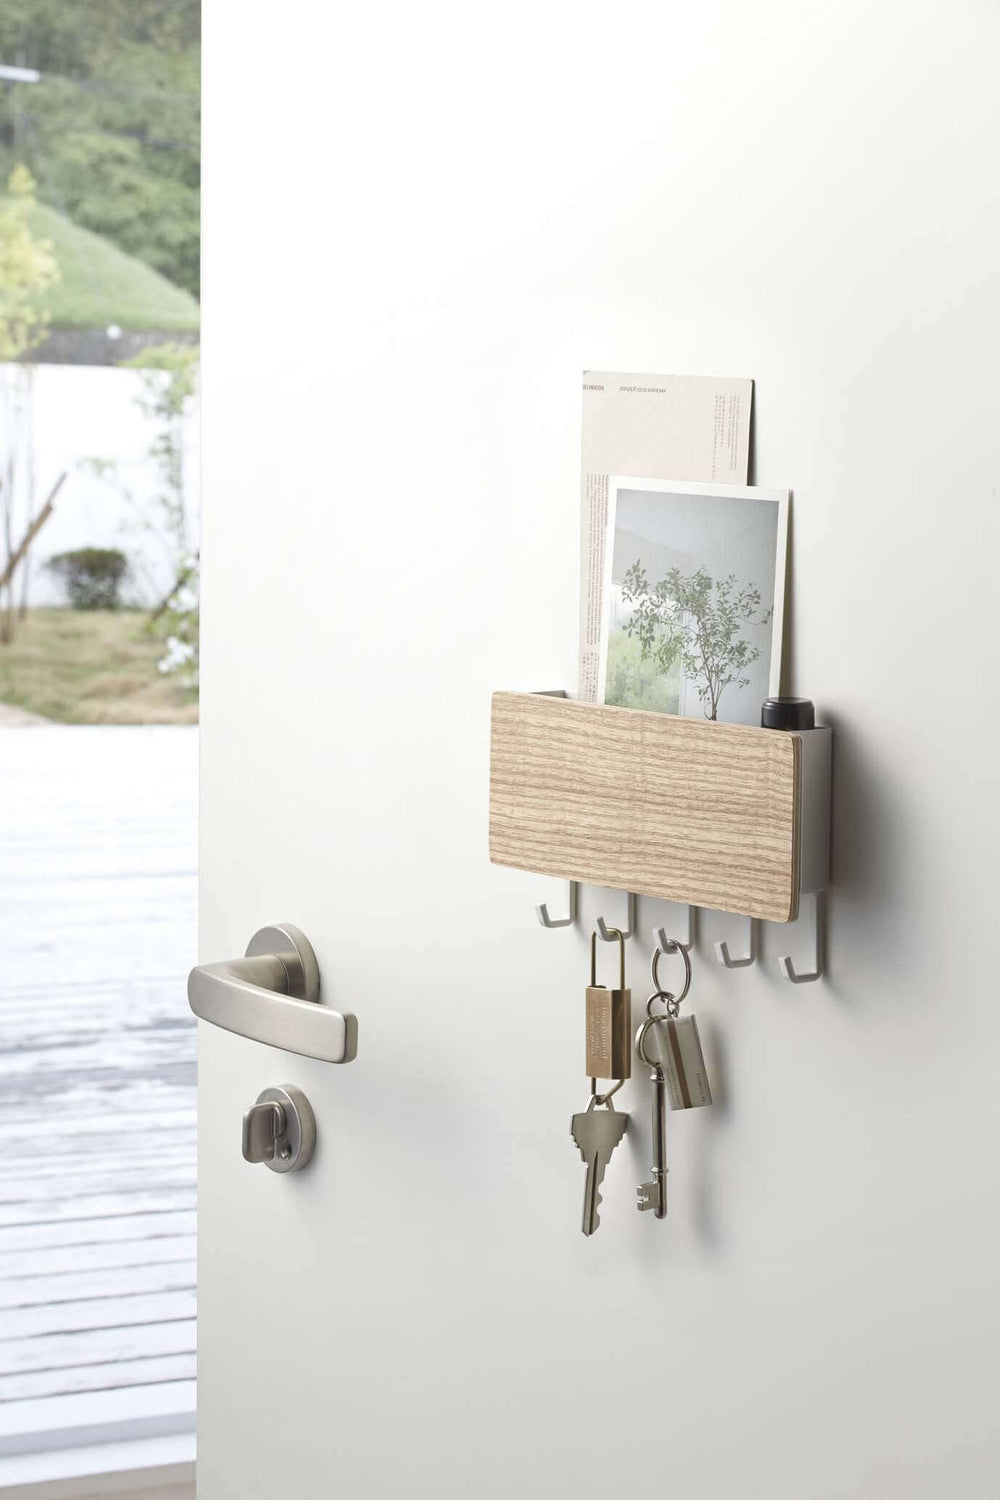 Yamazaki's magnetic key rack with wood front panel holding keys and postcards